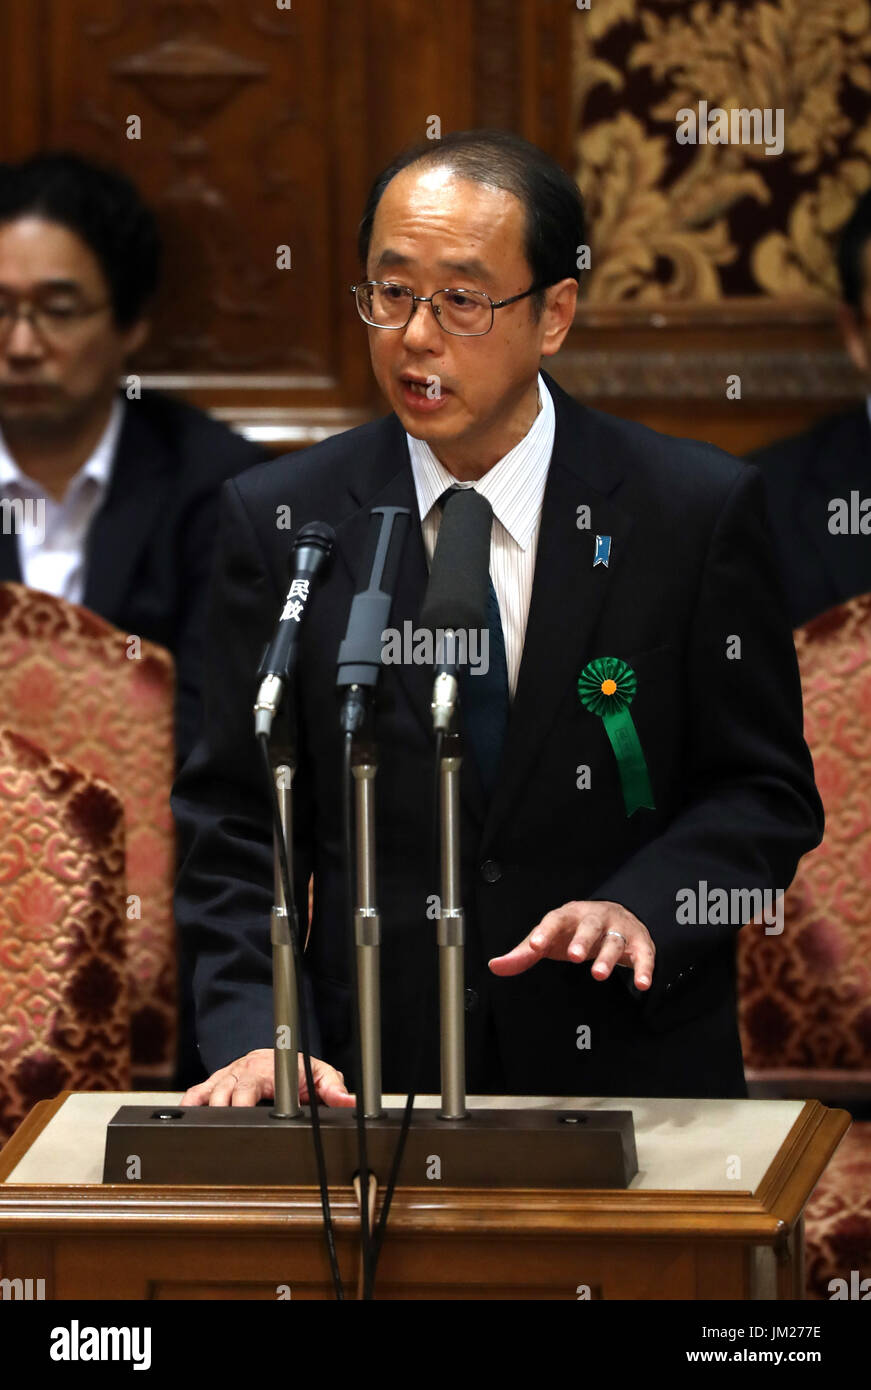 Tokyo, Japan. 25th July, 2017. Japanese Prime Minister's special advisor Hiroto Izumi answers a question by an opposition lawmaker at Upper House's budget committee session at the National Diet in Tokyo on Tuesday, July 25, 2017. Abe said he was not asked by his friend Kotaro Kake for help in opening a new university department in Imabari. Credit: Yoshio Tsunoda/AFLO/Alamy Live News - Stock Image